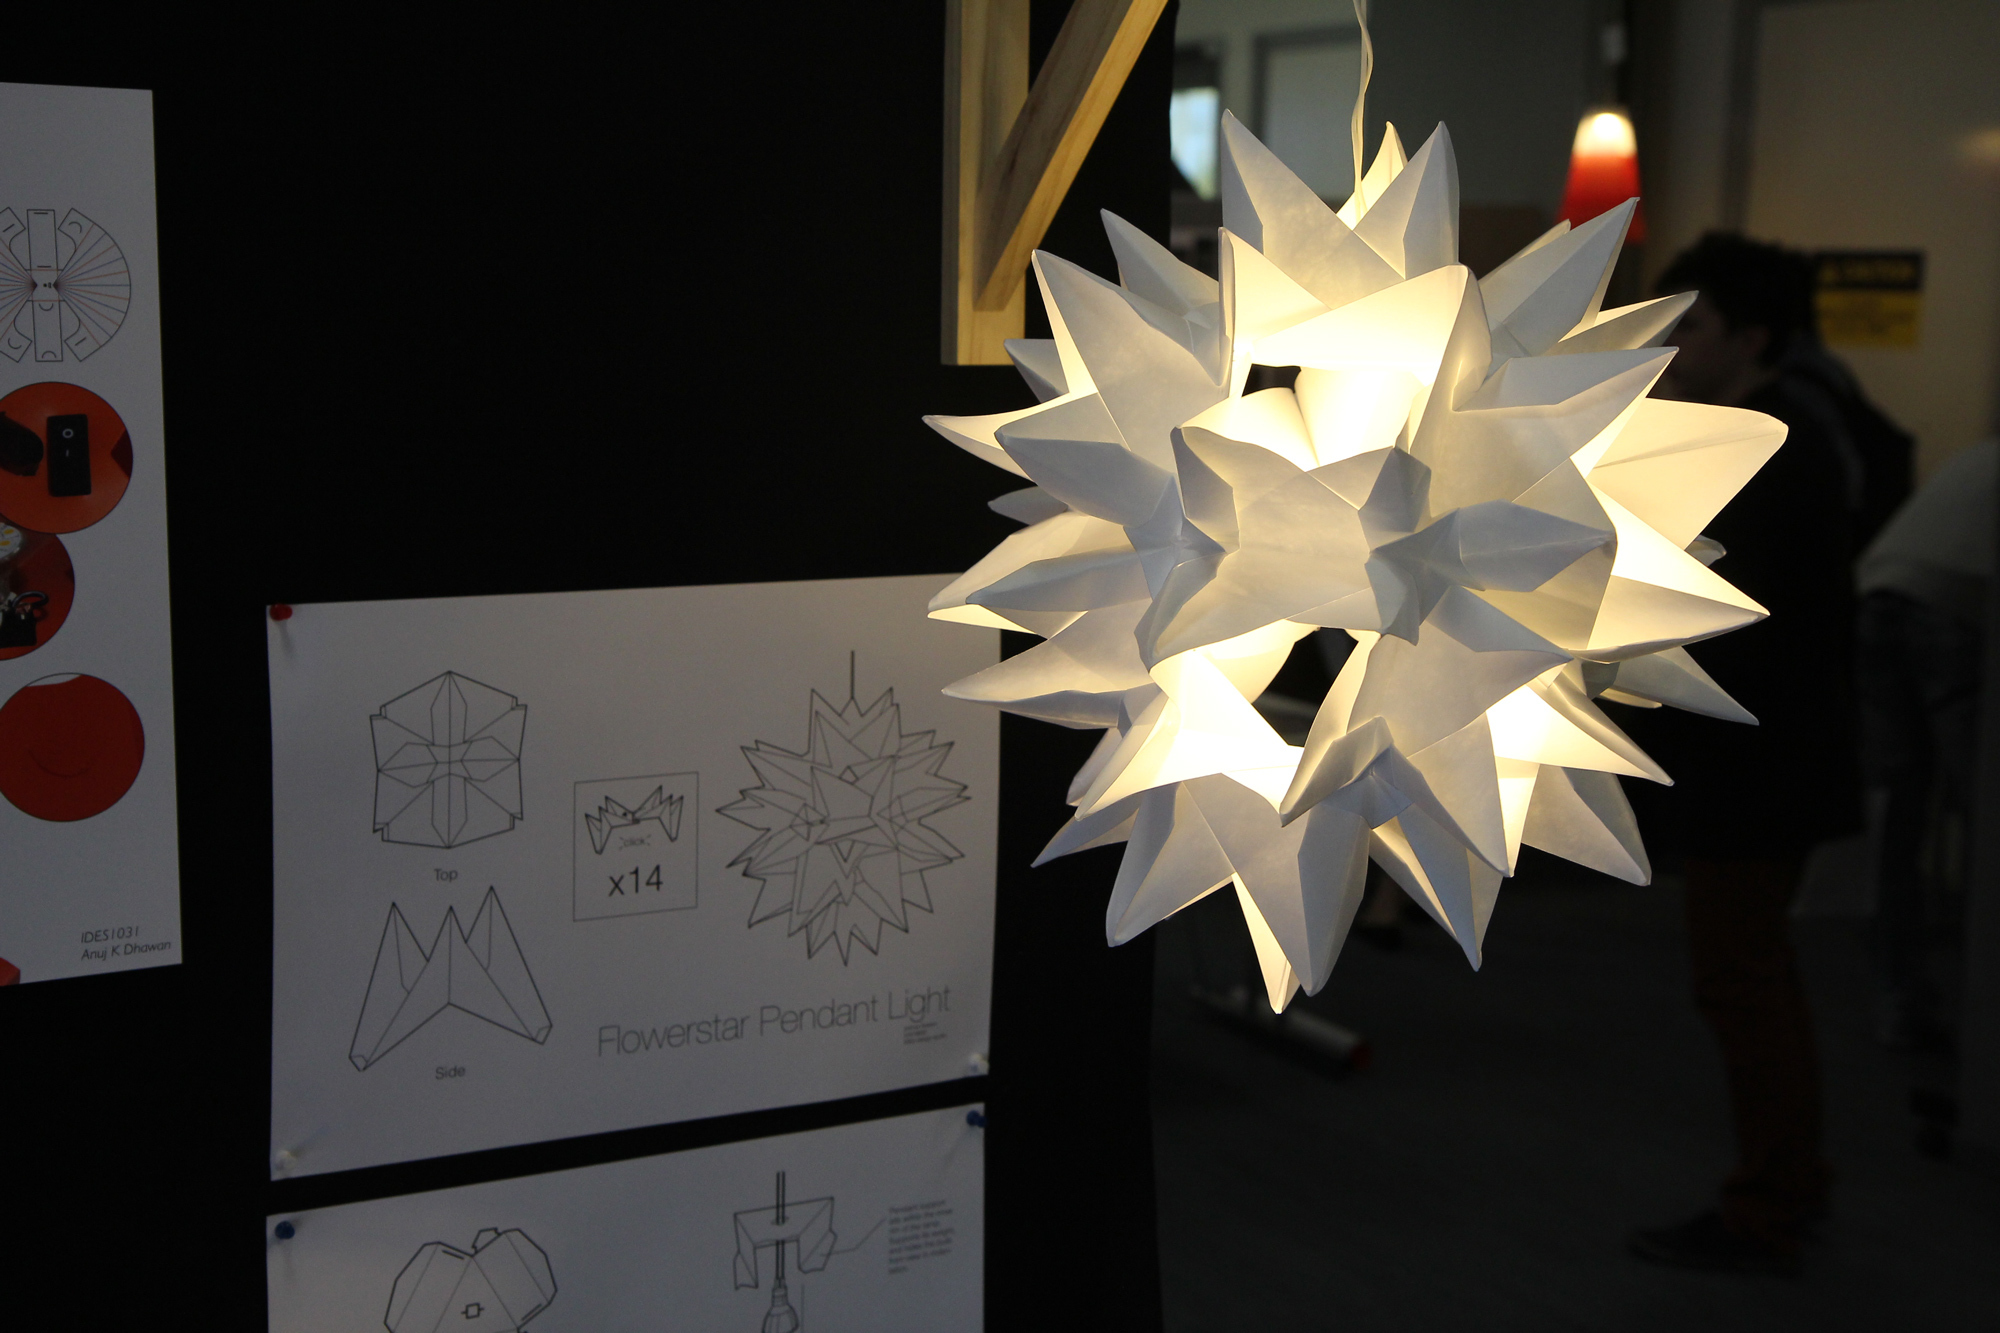 A lighting design exercise built with a modular origami construction